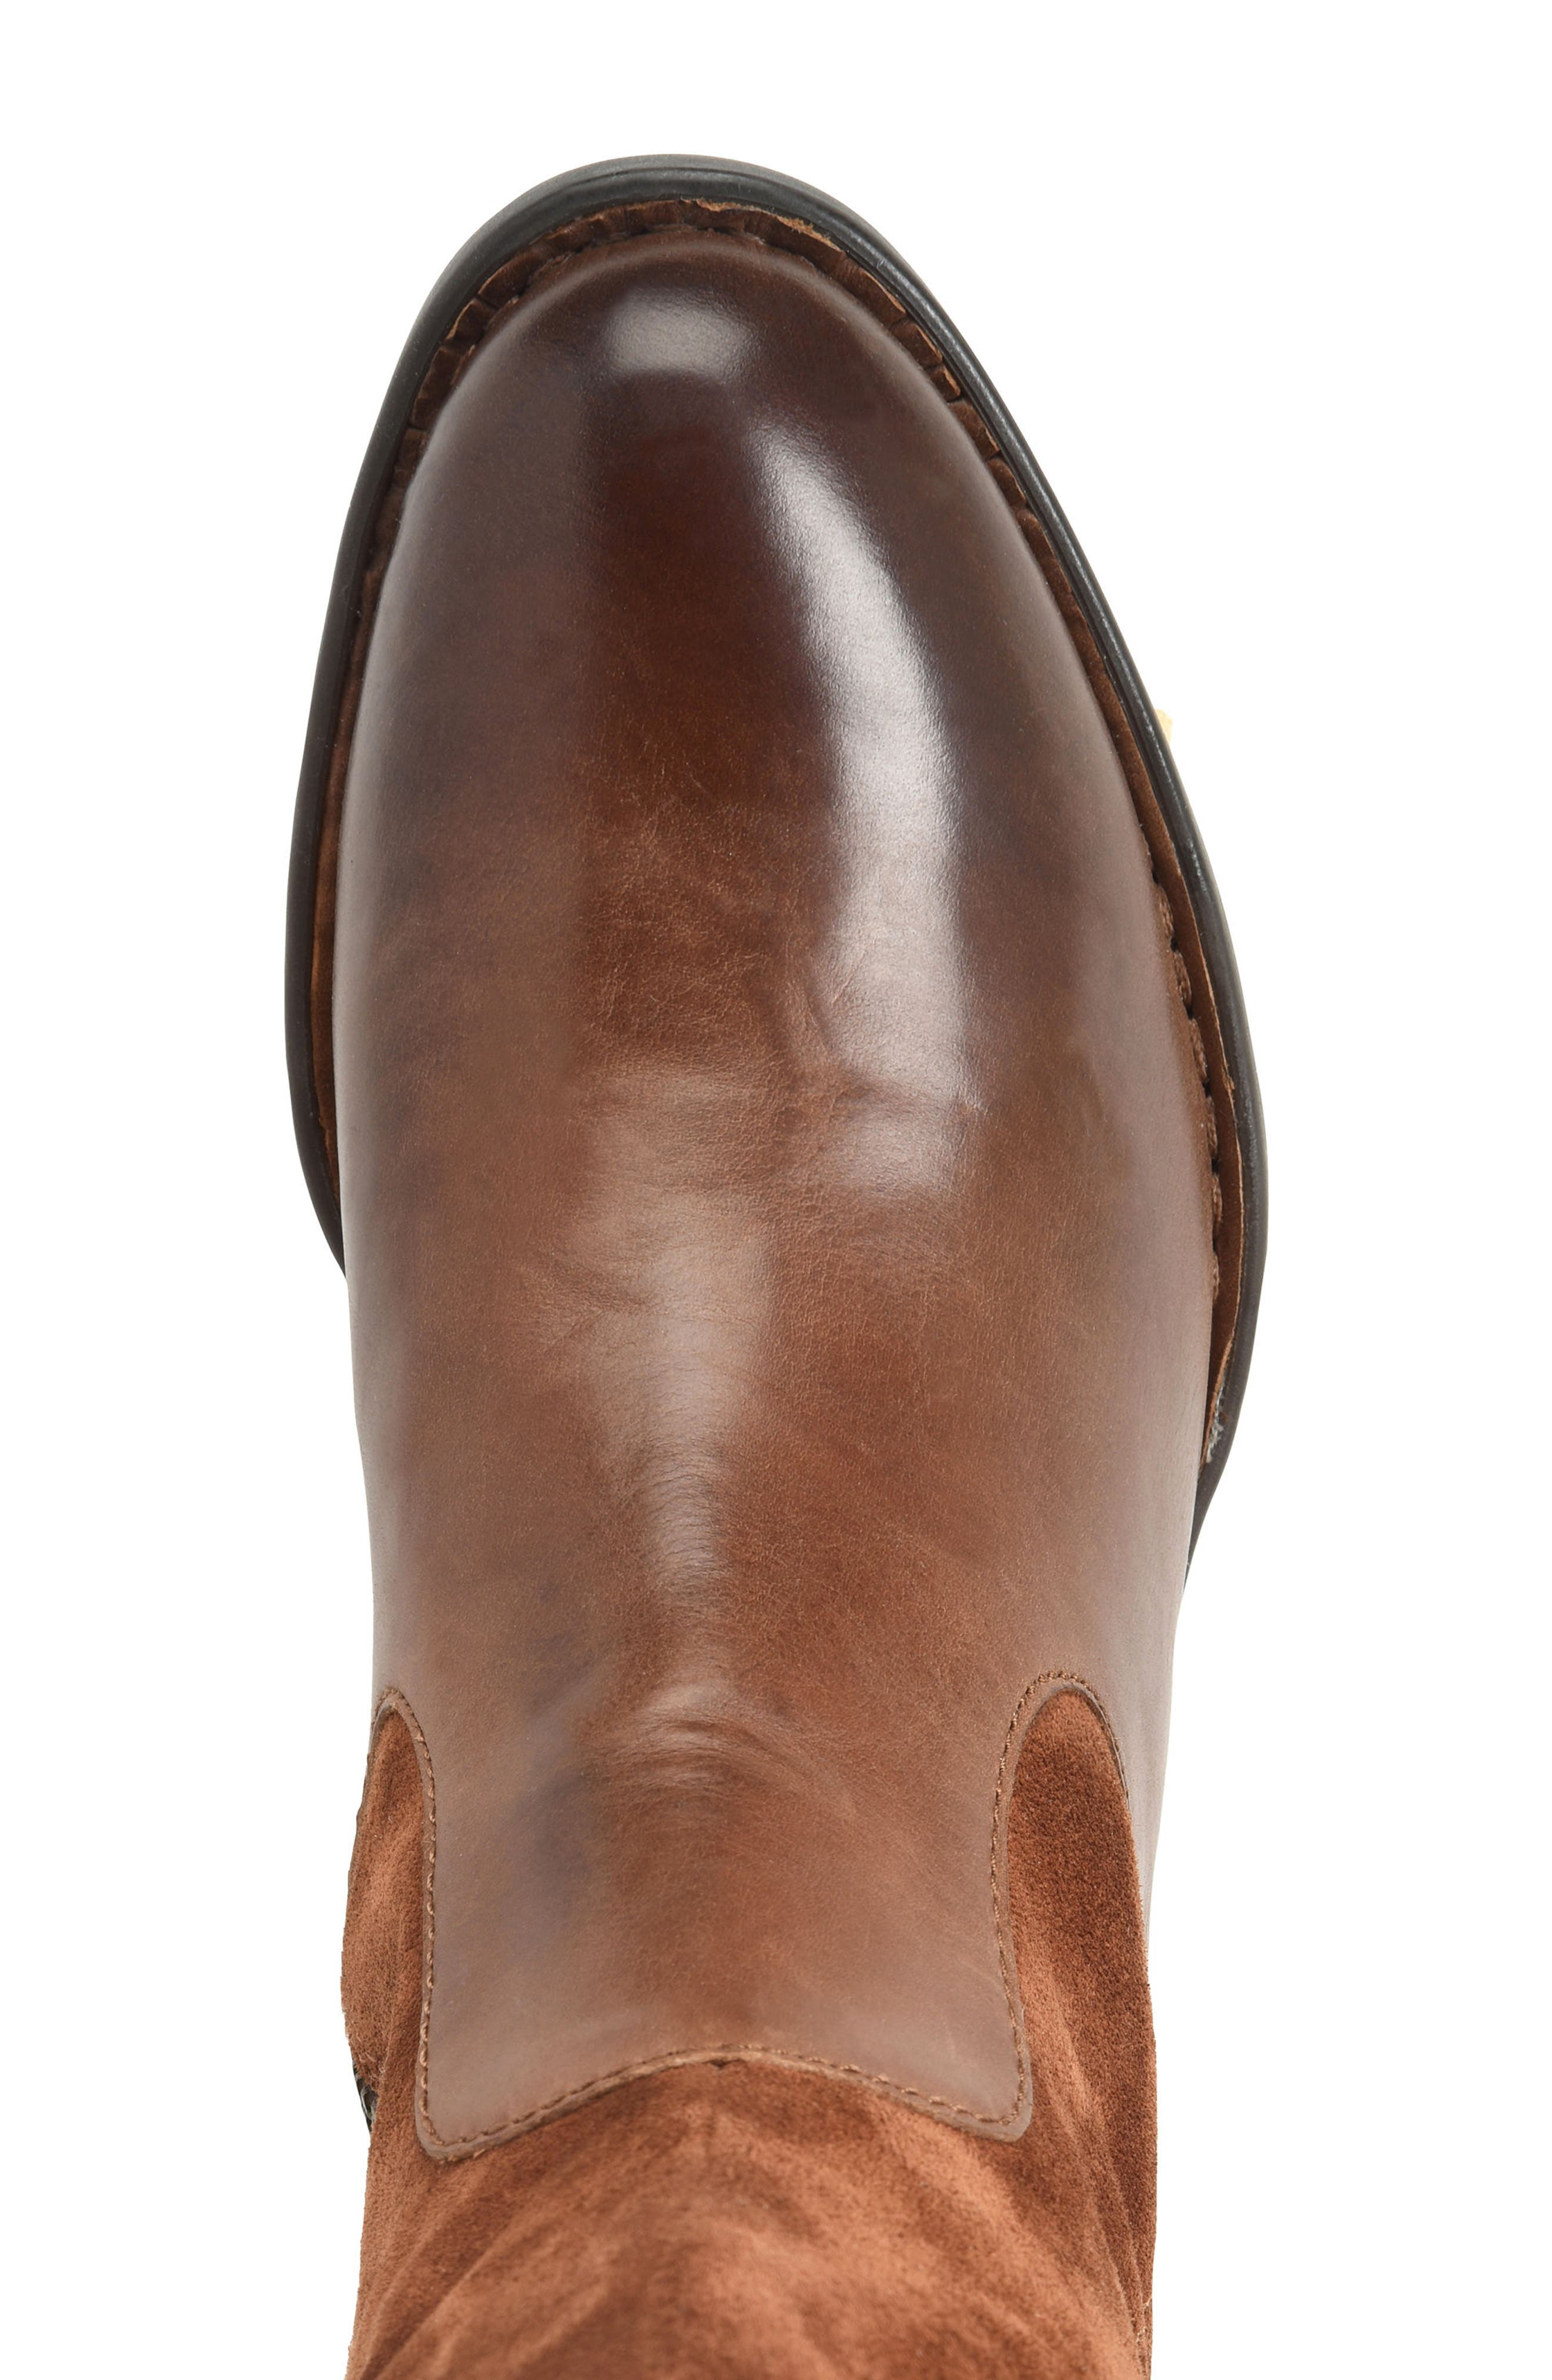 Cook Knee High Boot,                             Alternate thumbnail 5, color,                             Brown/ Rust Combo